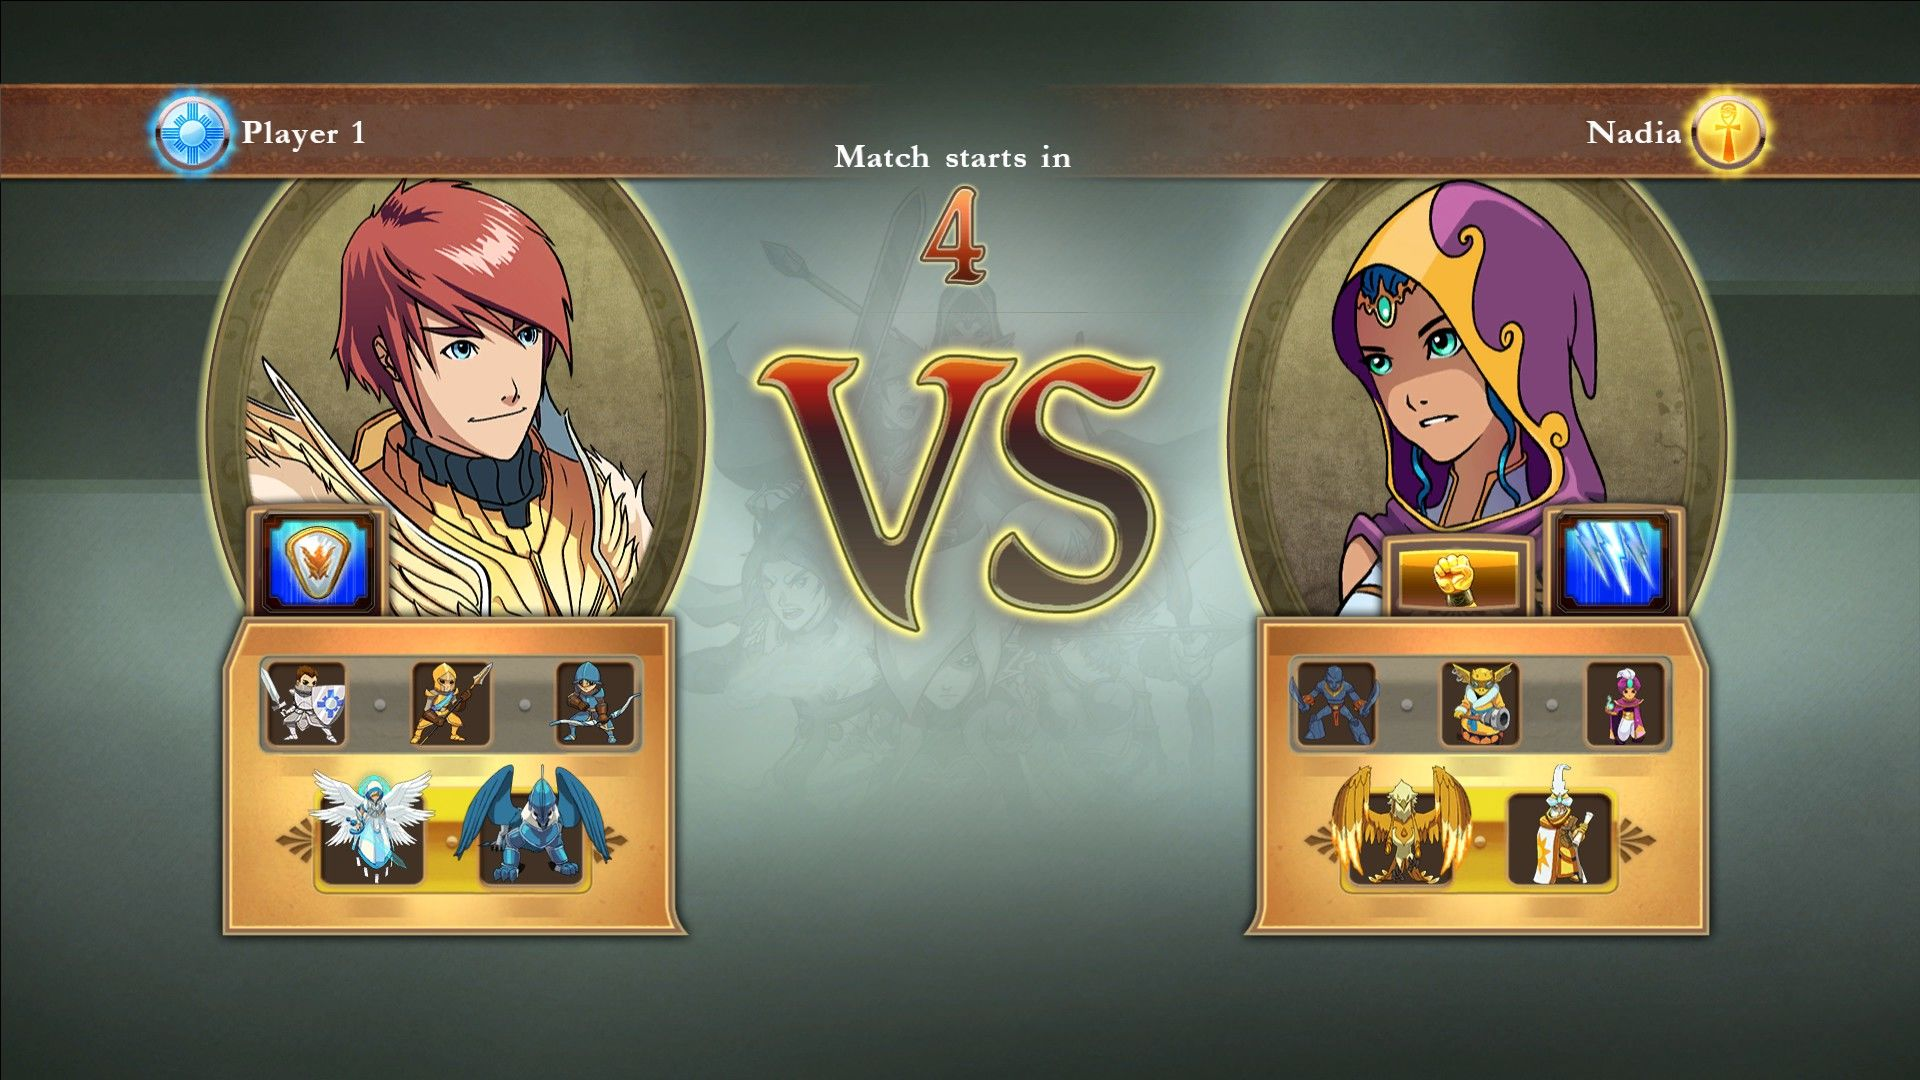 Might & Magic: Clash of Heroes Windows Godric the Knight versus Nadia the Wizard